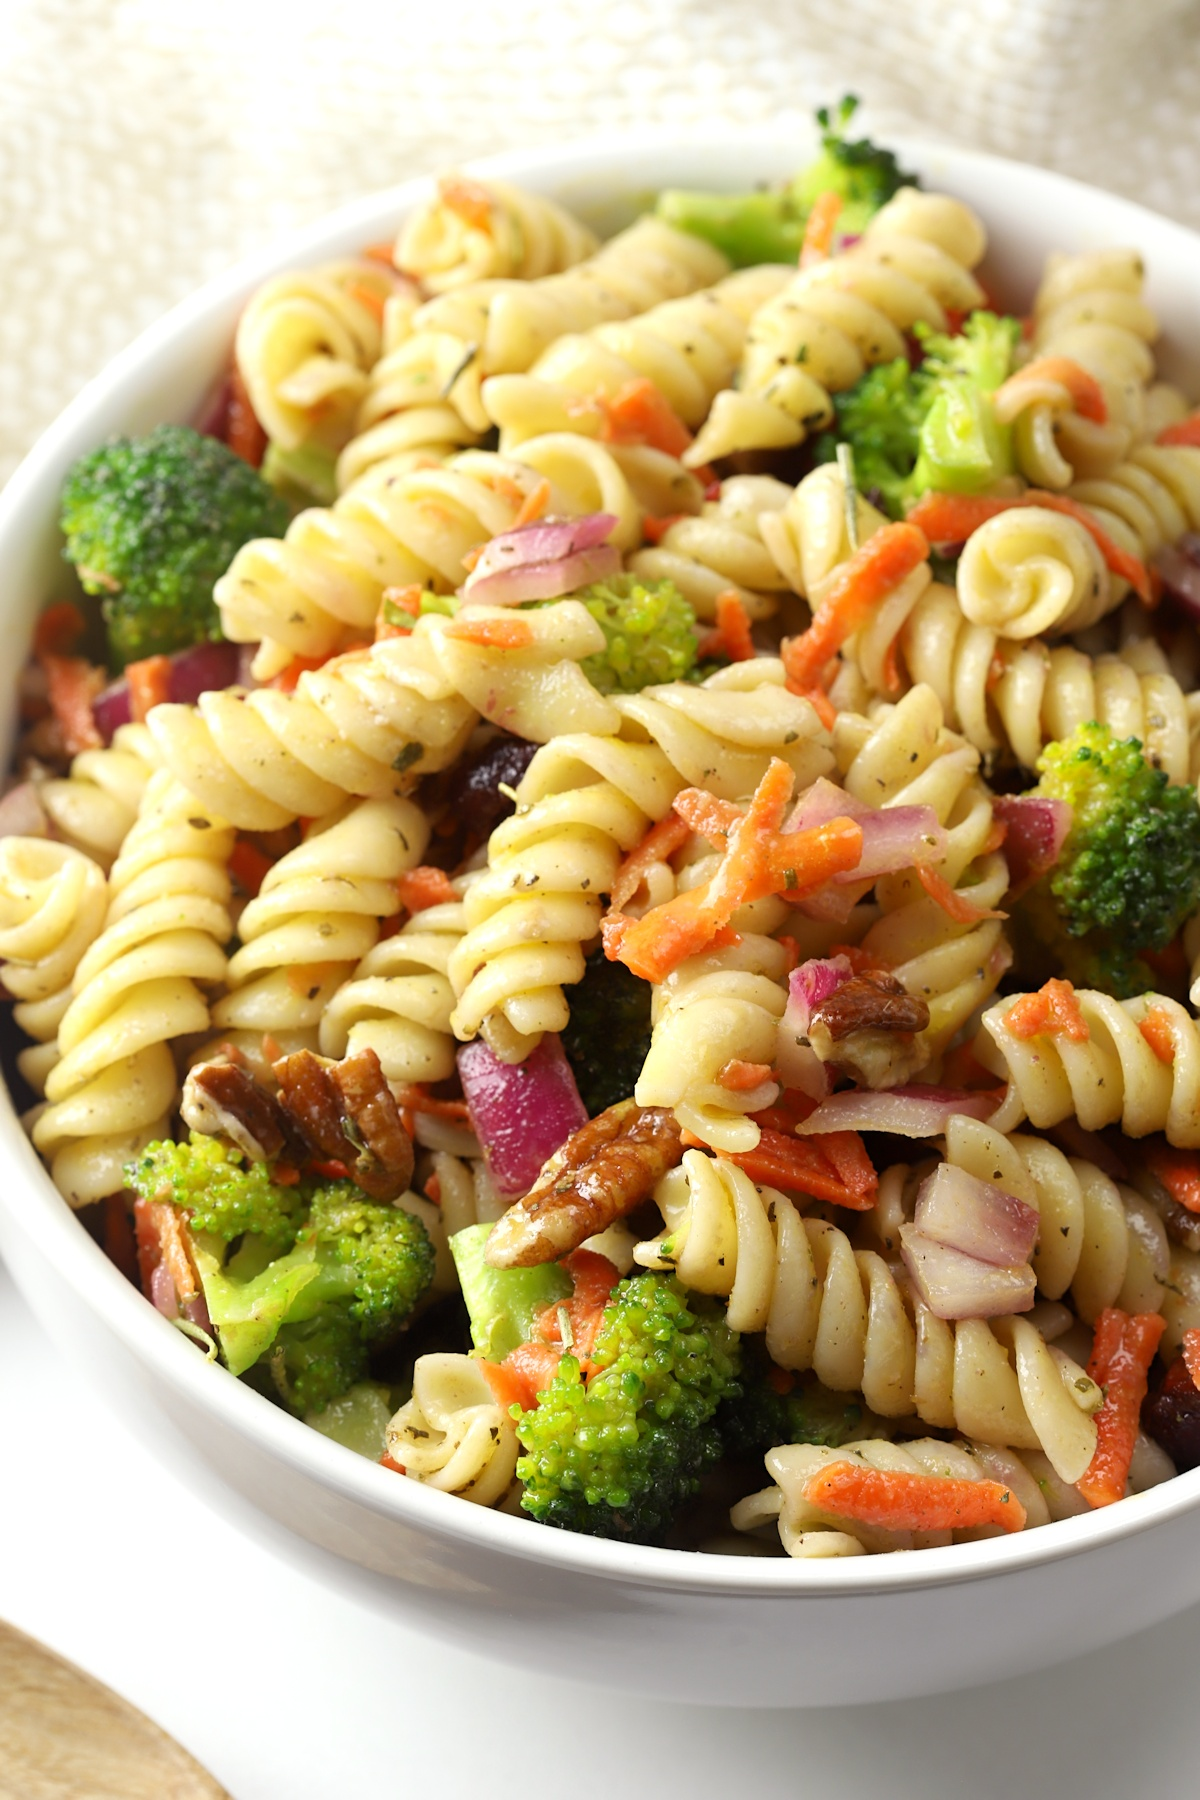 Rotini pasta tossed with grated carrots, broccoli, pecans, and cranberries.